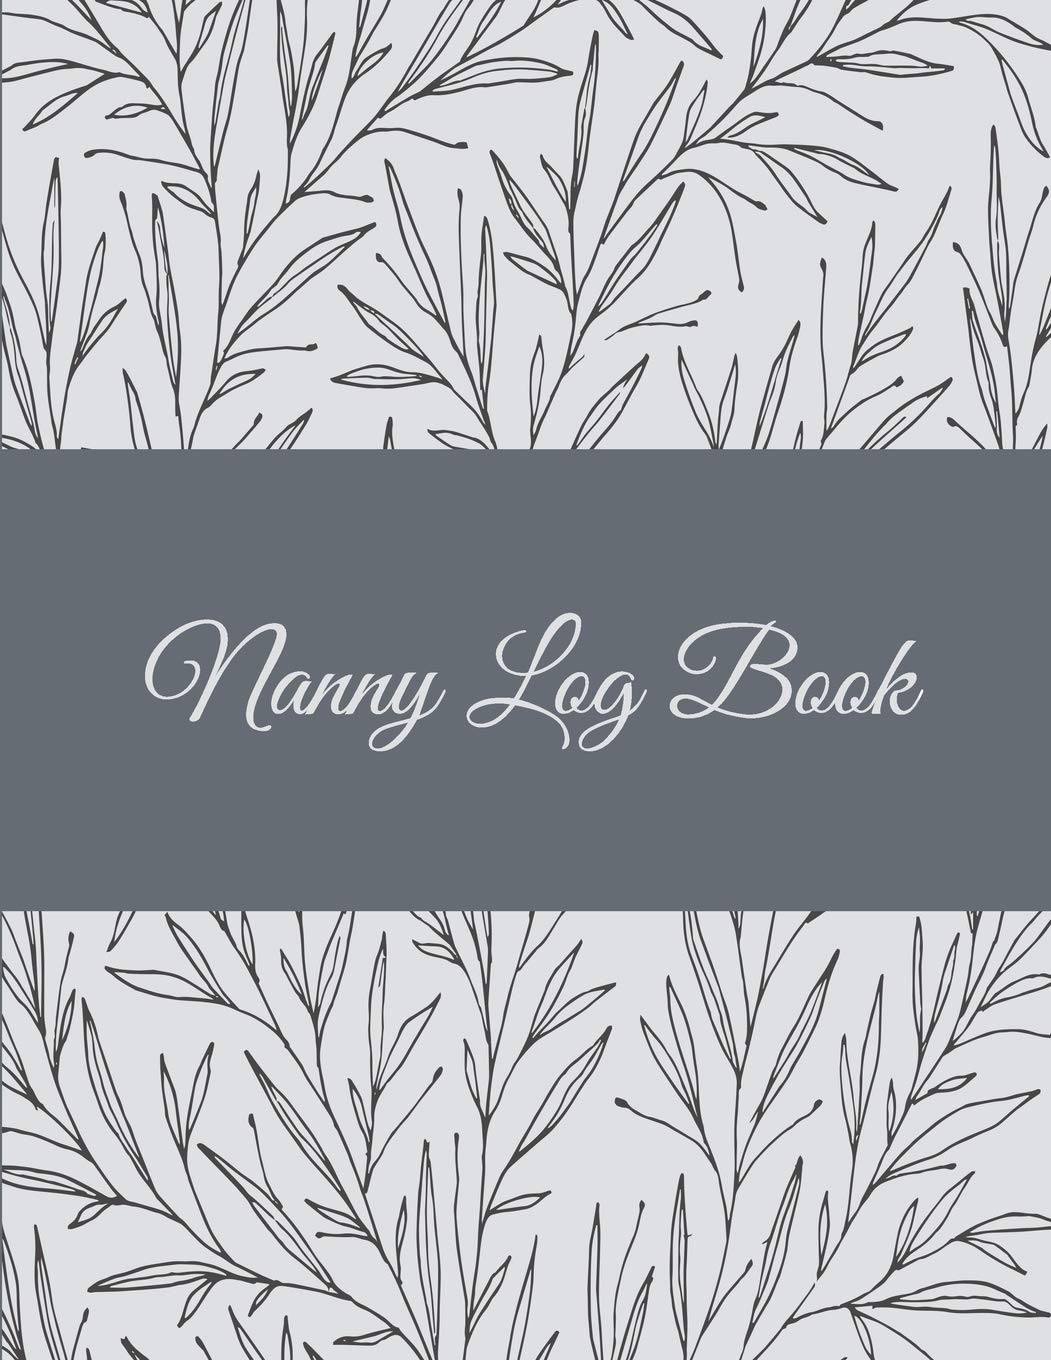 Image OfNanny Log Book: Floral Design, 8.5